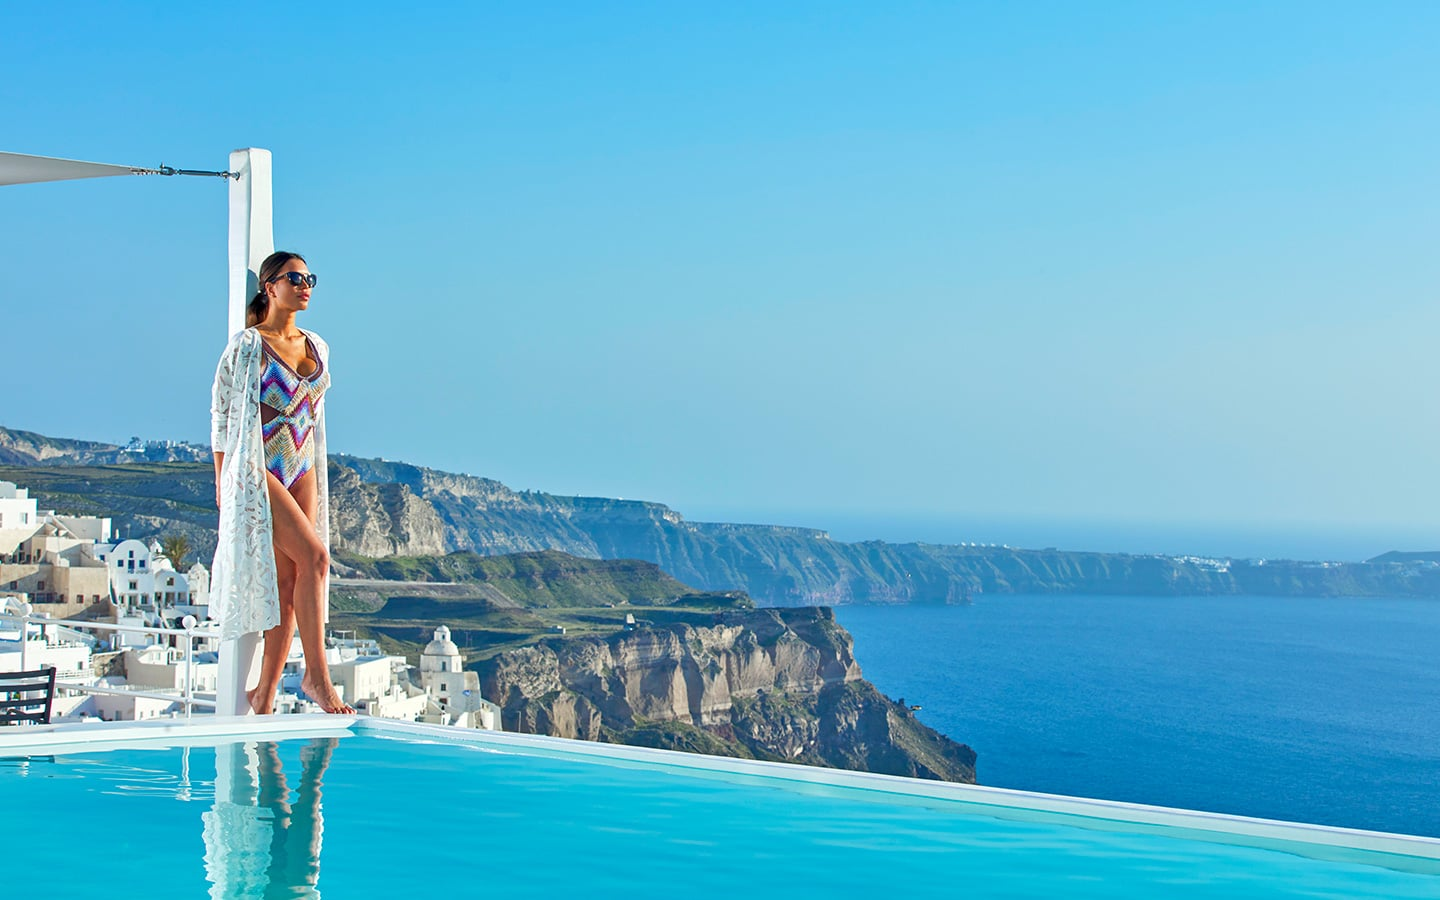 Lady standing by the edge of the infinity pool at Cosmopolitan Luxury Suites Santorini.